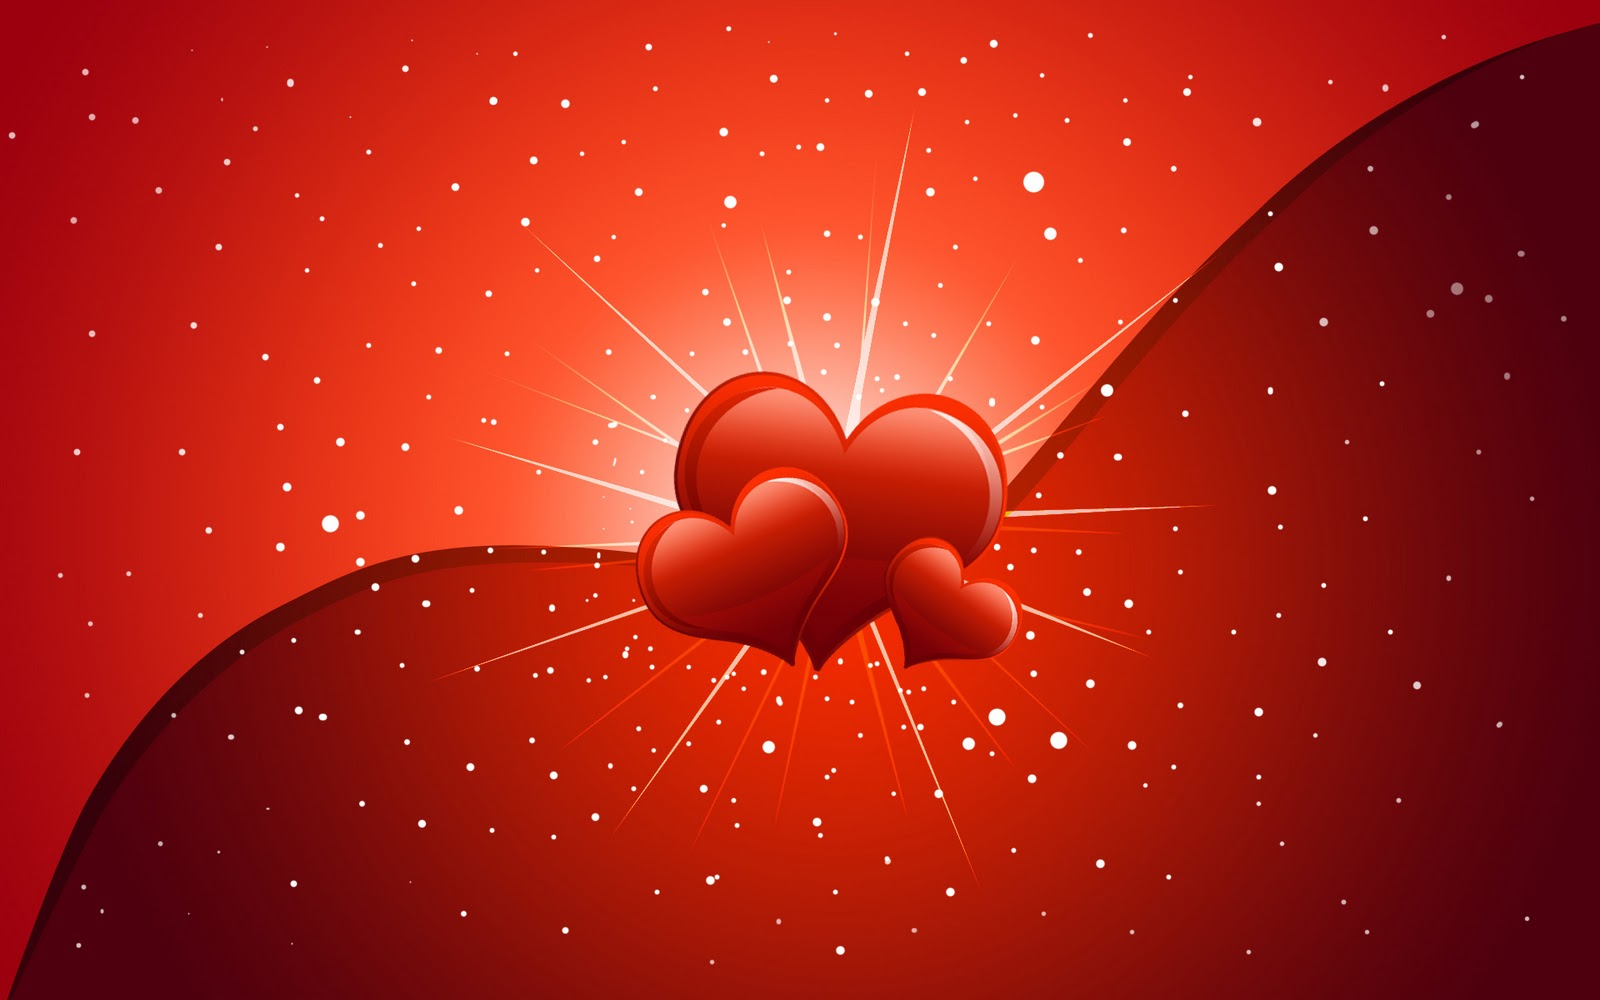 Free Desktop Wallpapers | Backgrounds: Valentine Wallpapers, Love Backgrounds for Computer